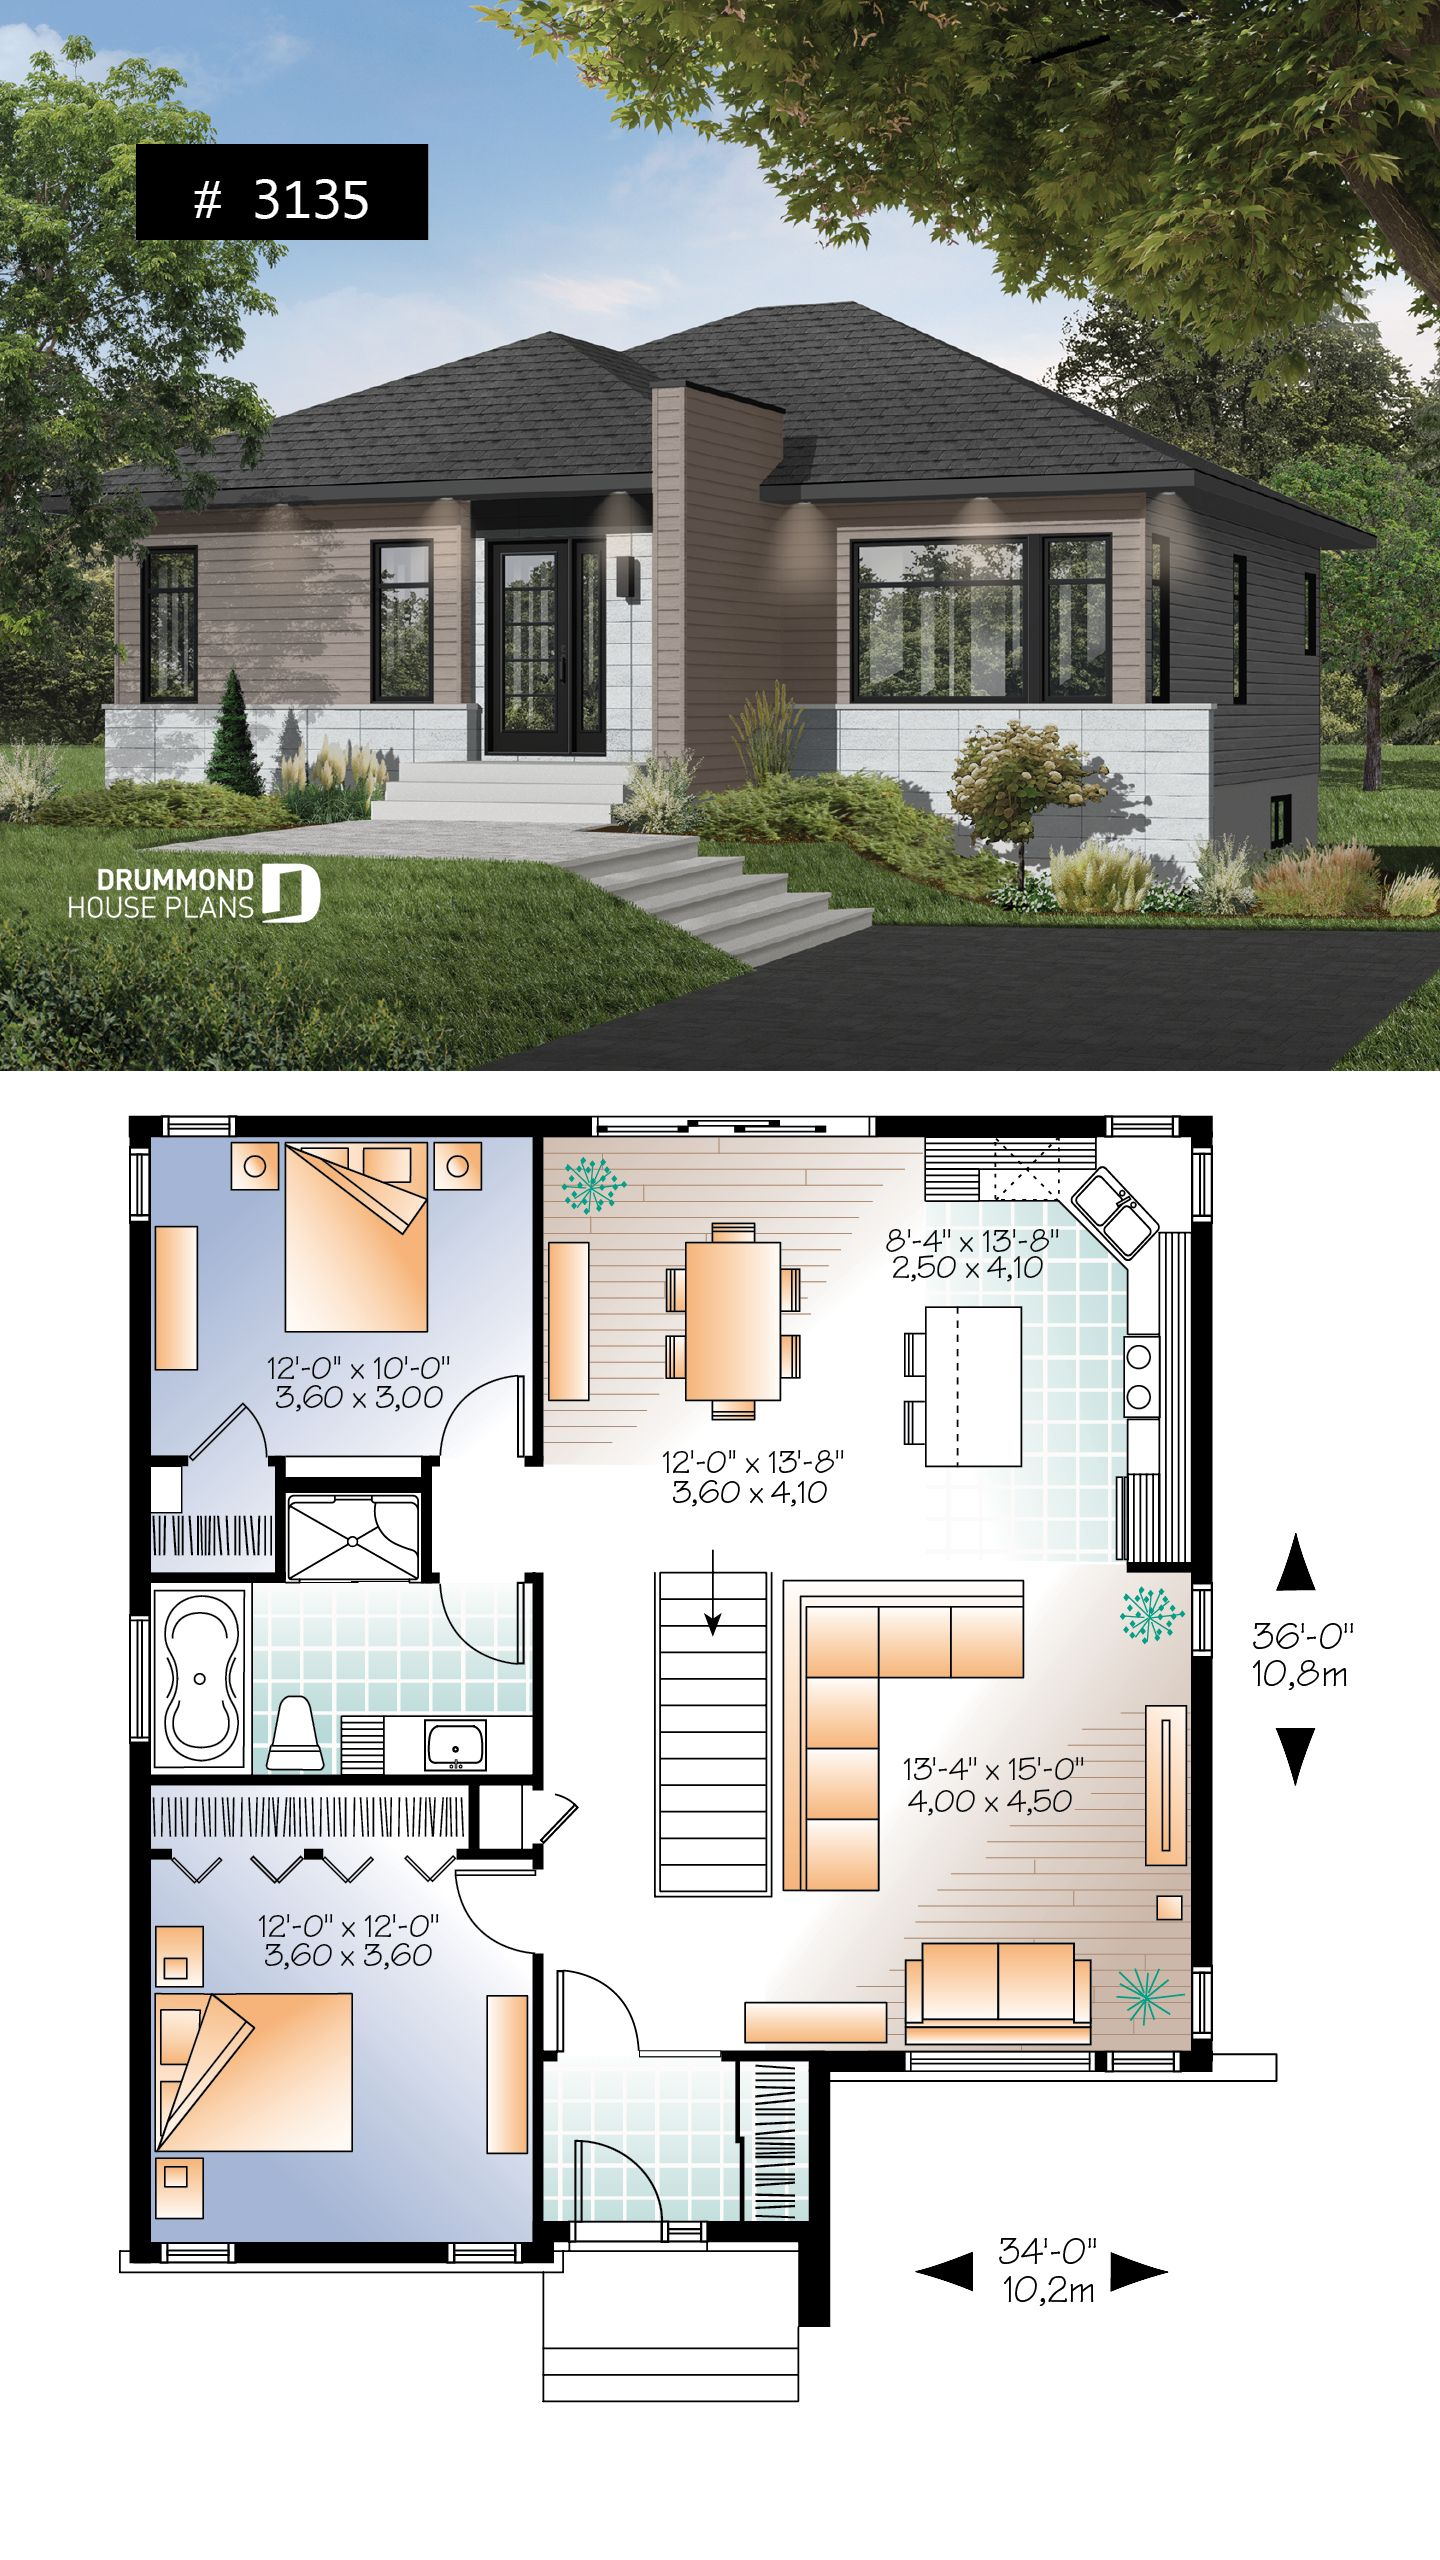 House Plan Camelia No 3135 Modern Style House Plans Small Modern House Plans Bungalow House Plans